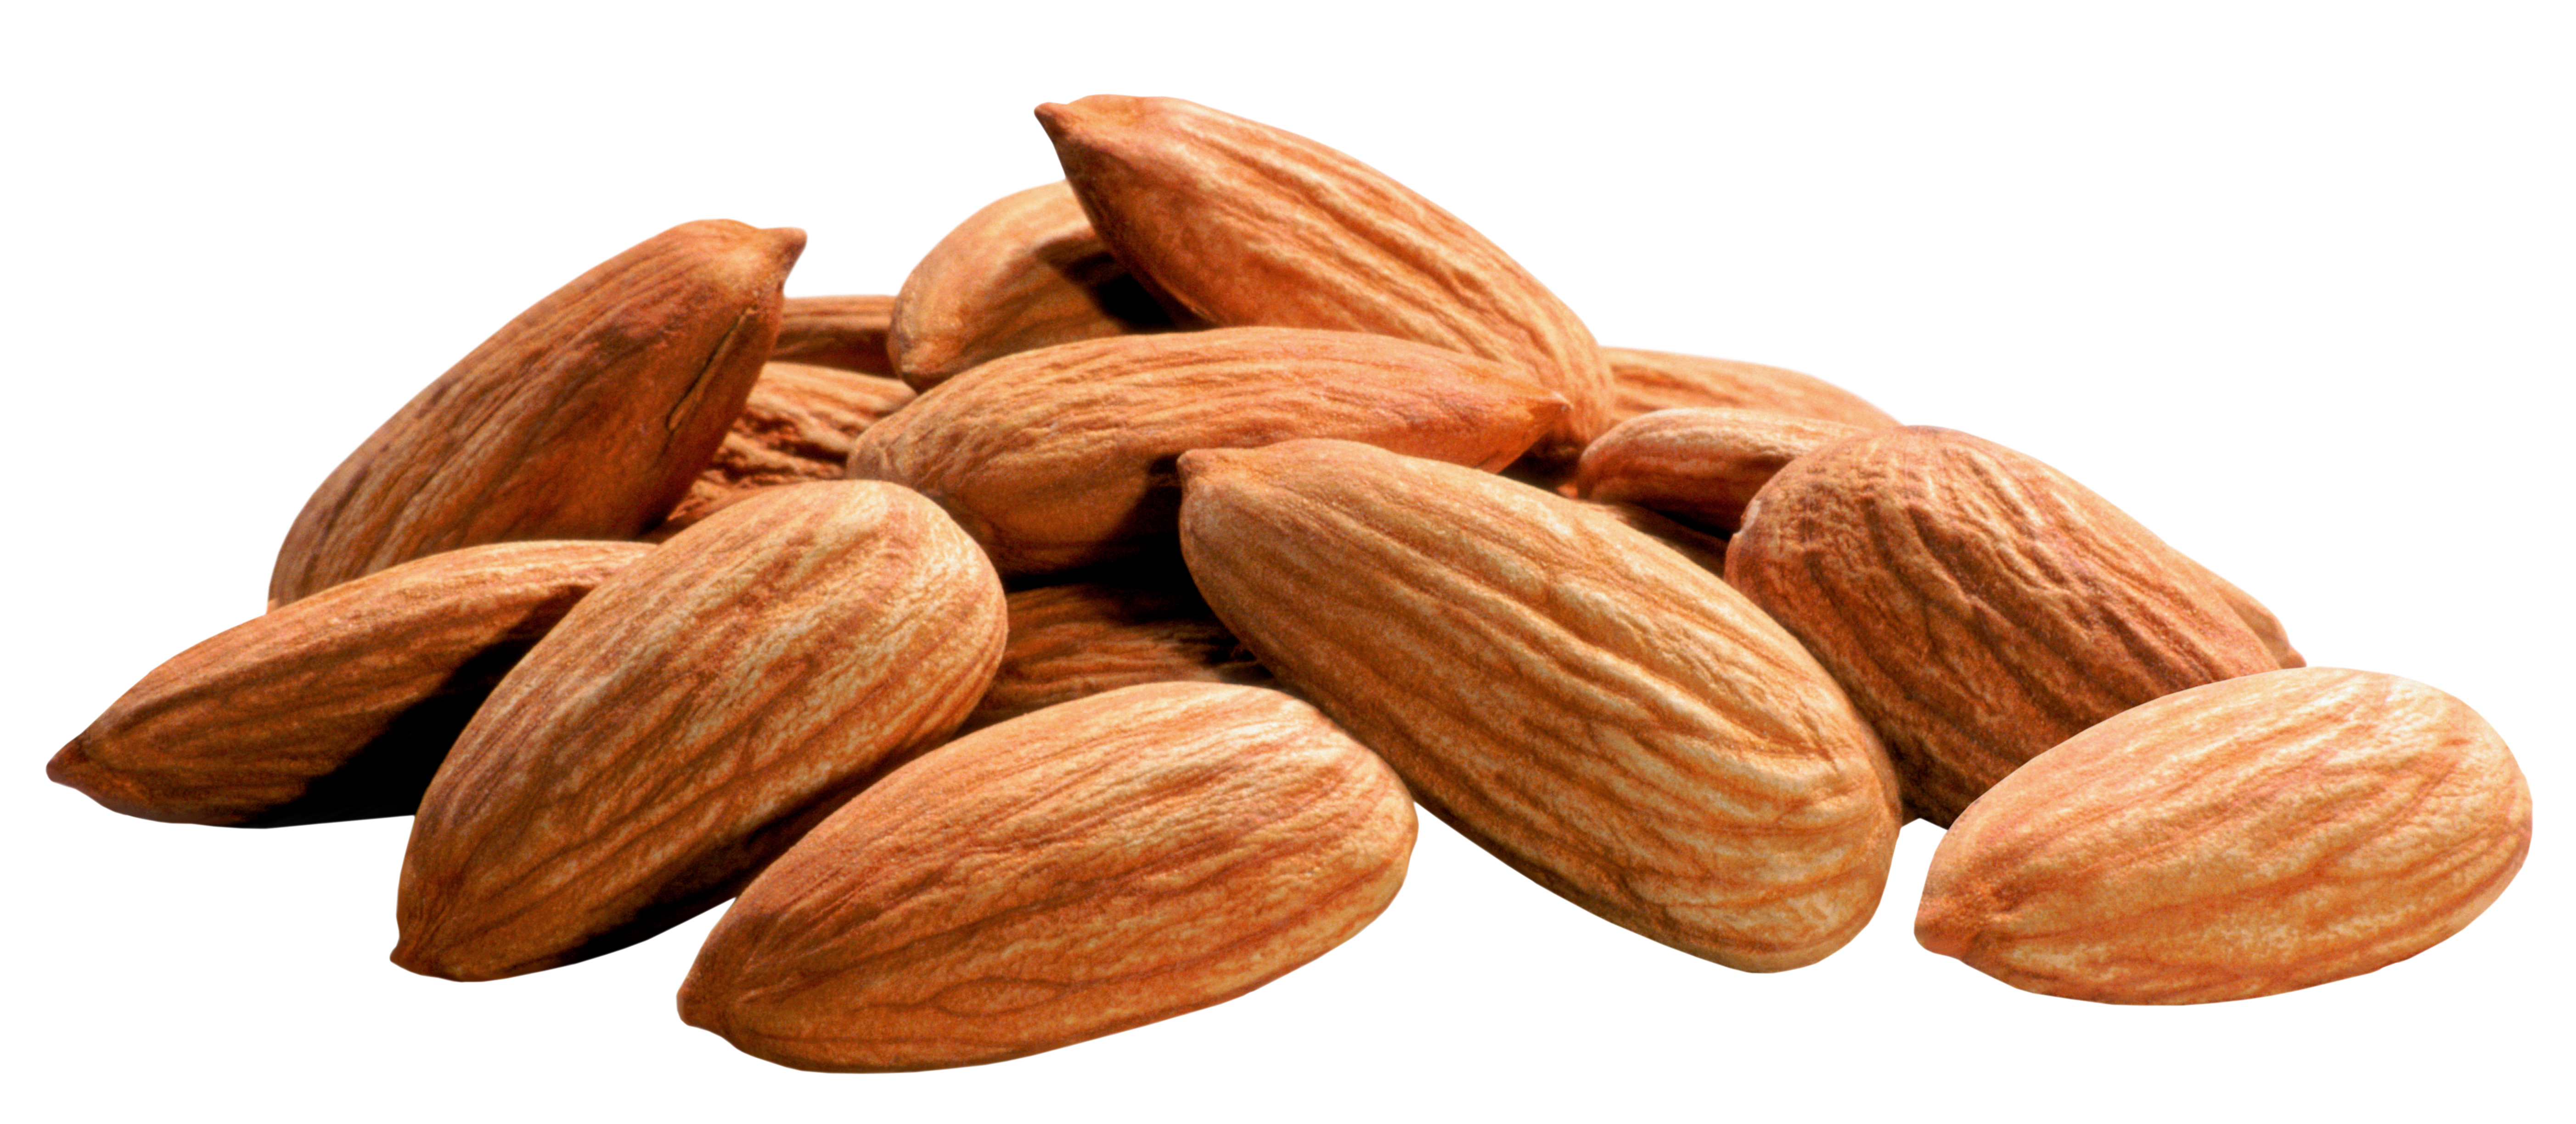 Almonds PNG Image.